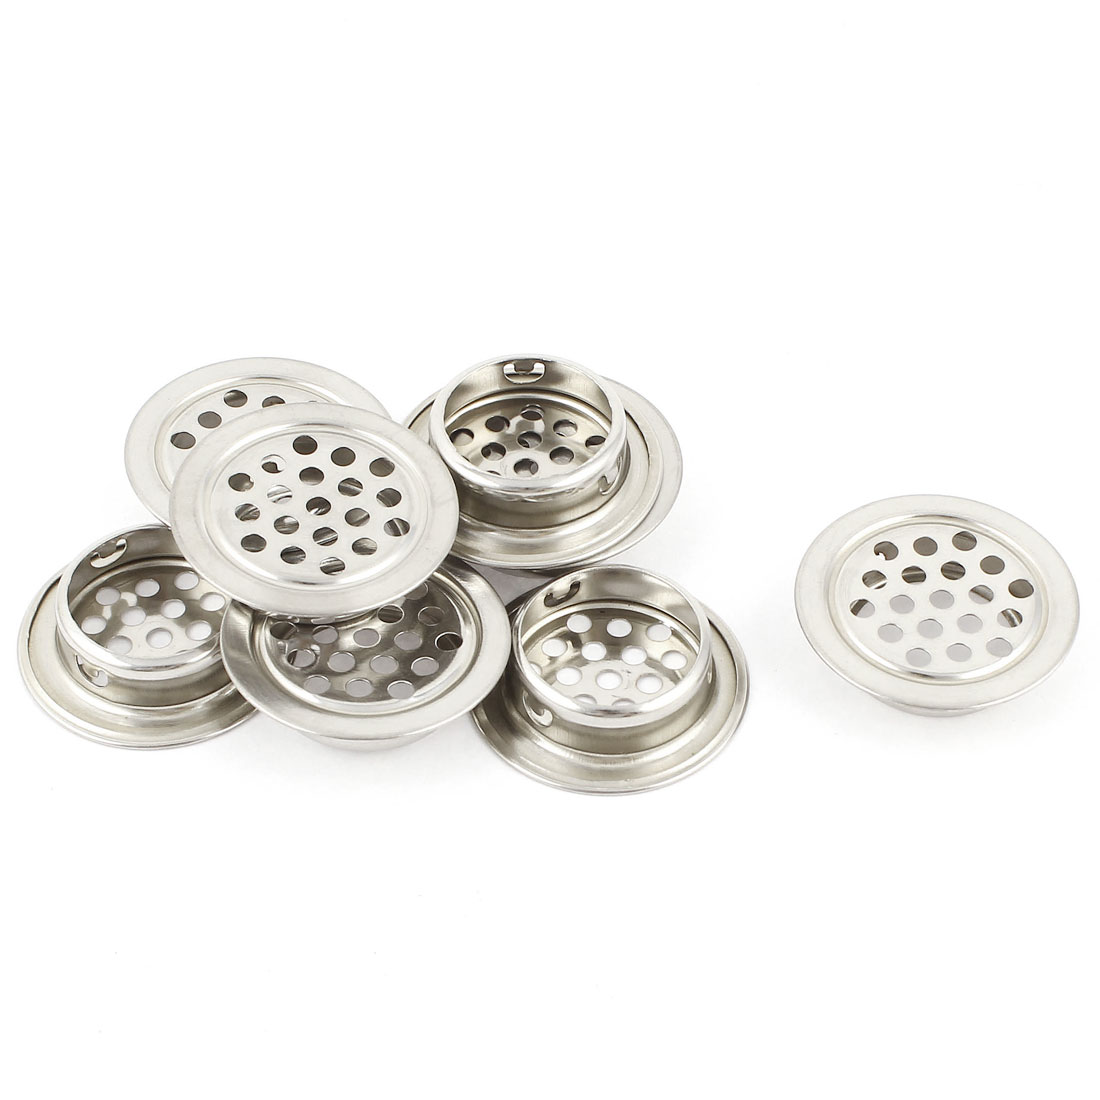 8 Pcs Silver Tone Stainless Steel Perforated Mesh Cabinet Air Vents Mini Louvers 25mm